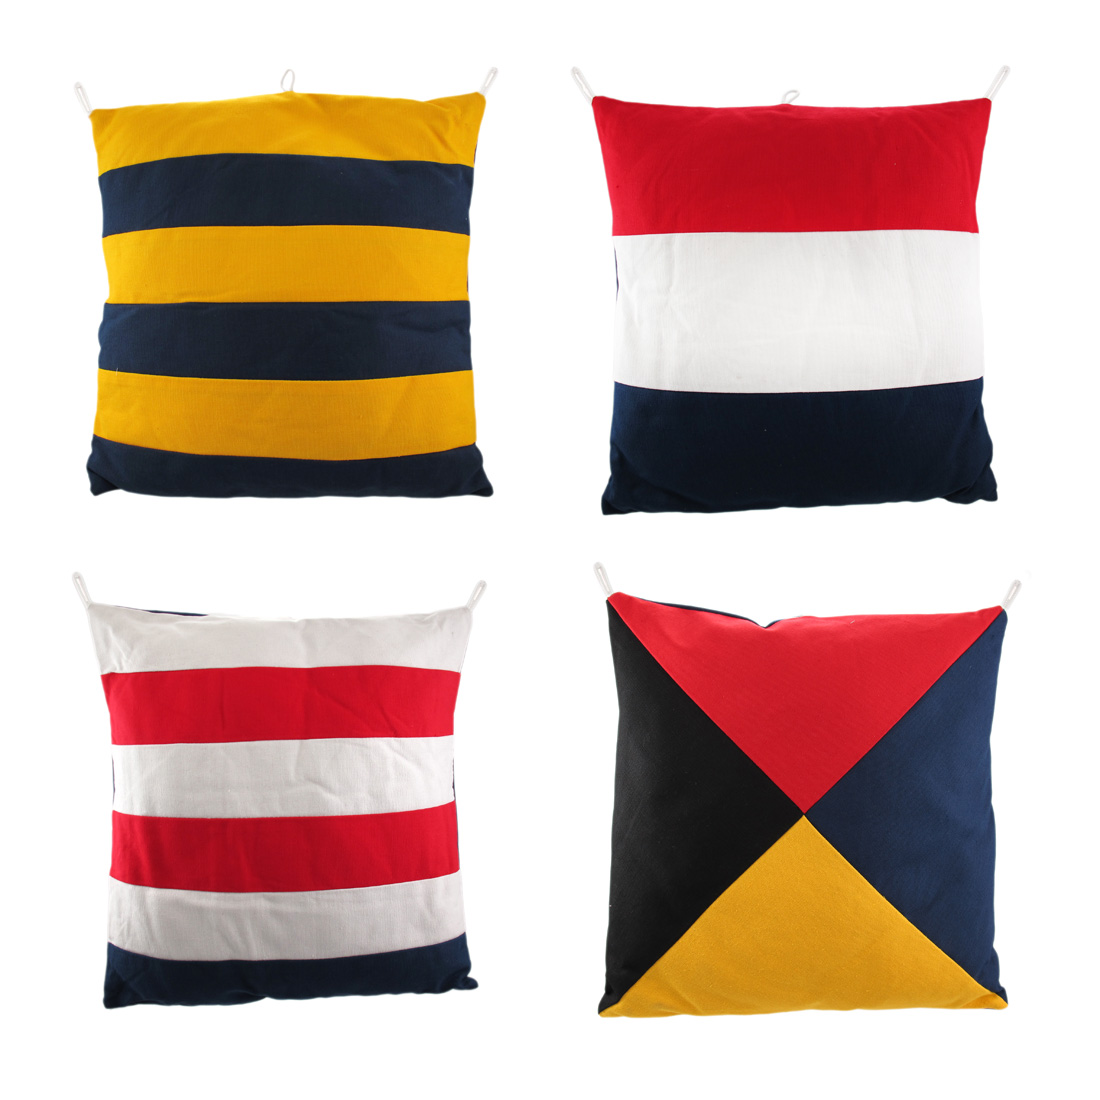 Throw Pillows Set Of 4 : Set of 4 Nautical Flag 14in X14IN Decorative Throw Pillows eBay